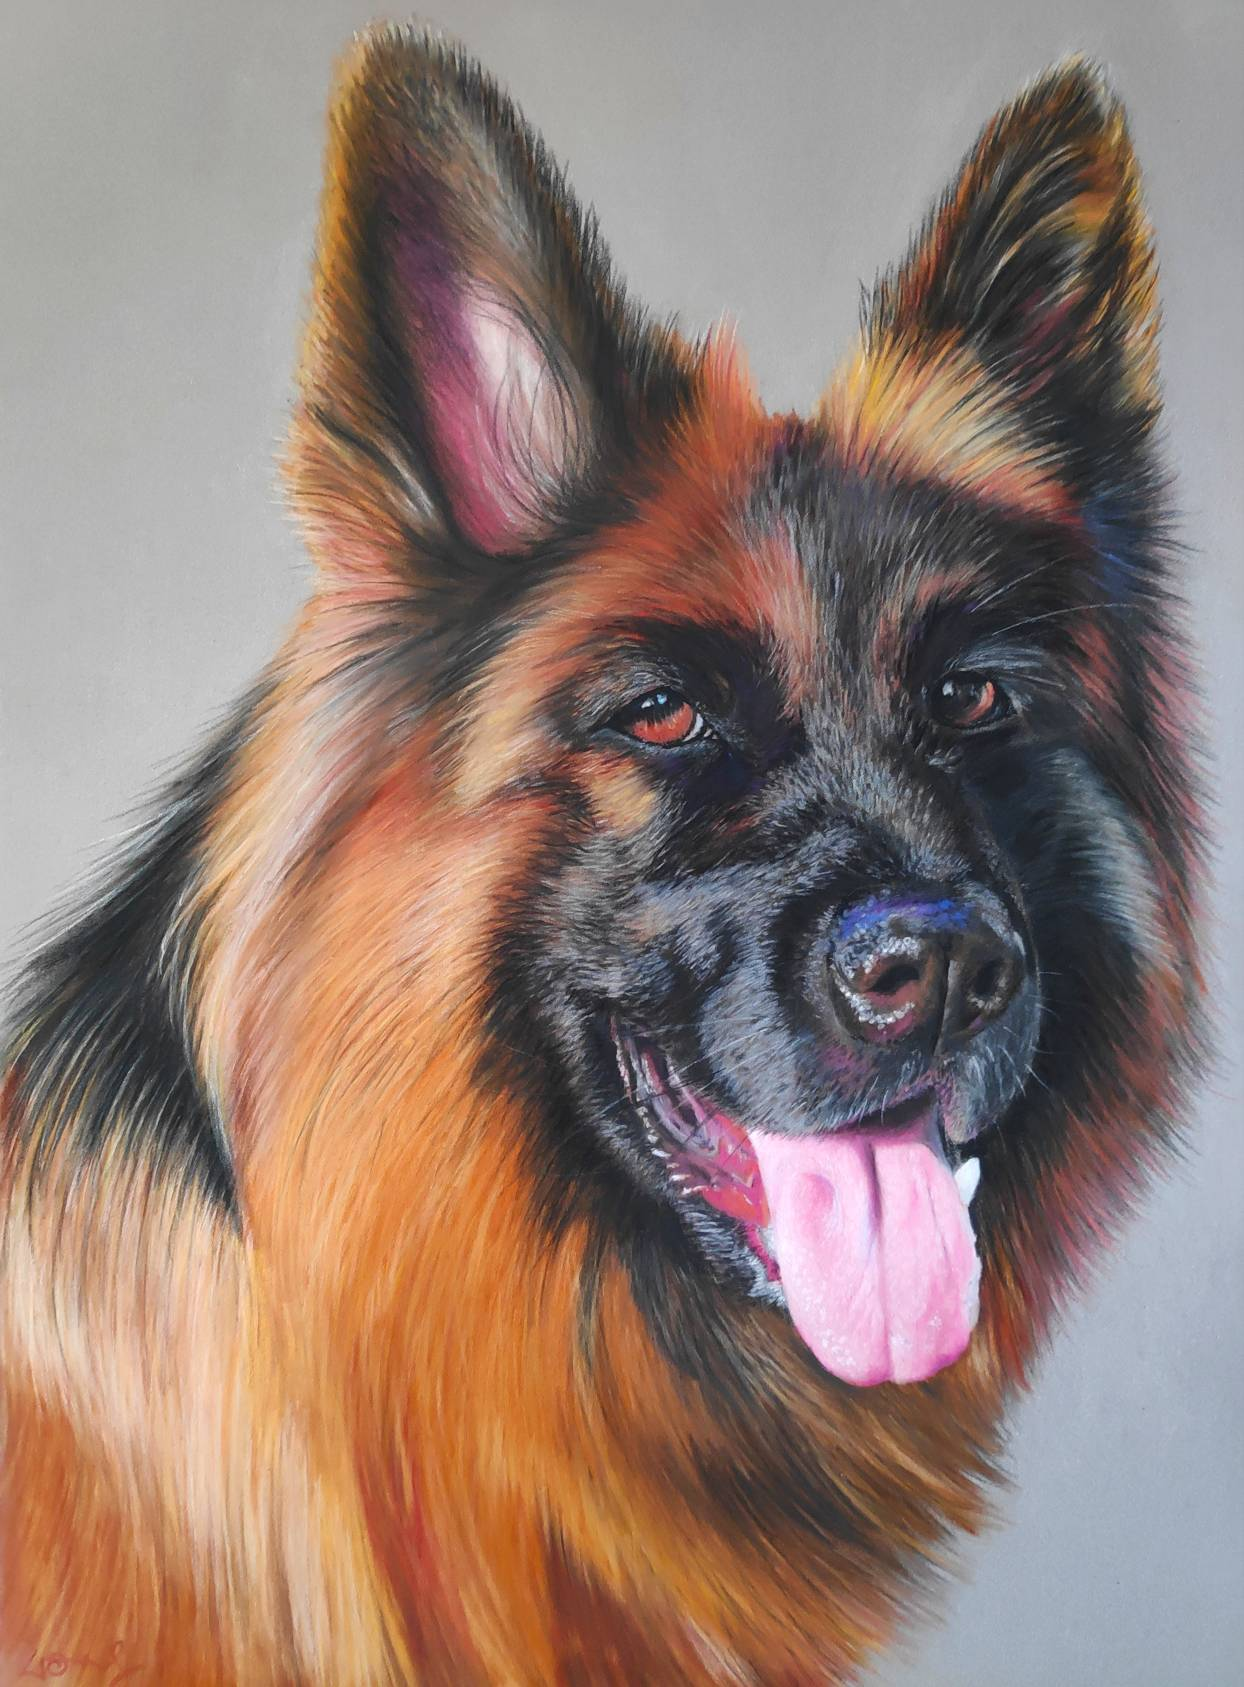 GermanShepard